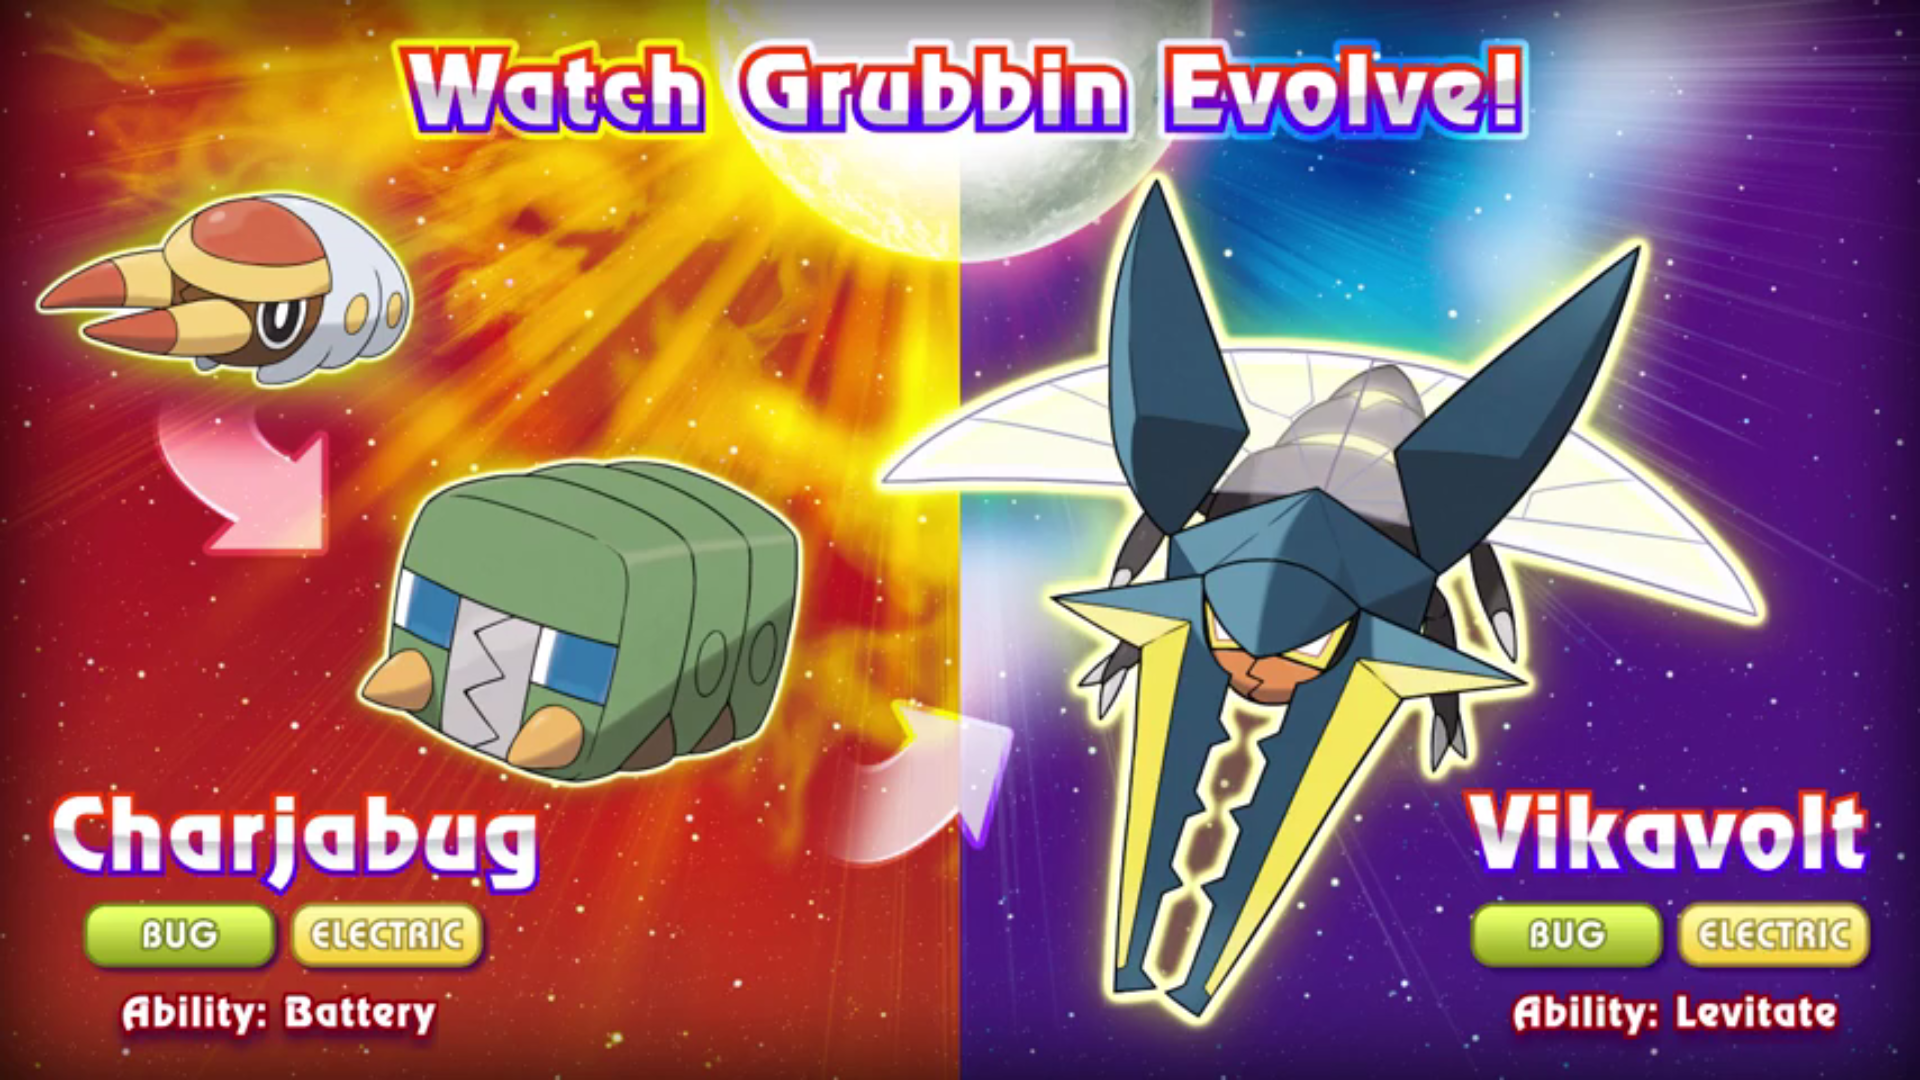 Grubbins Evolution Line Pokémon Know Your Meme